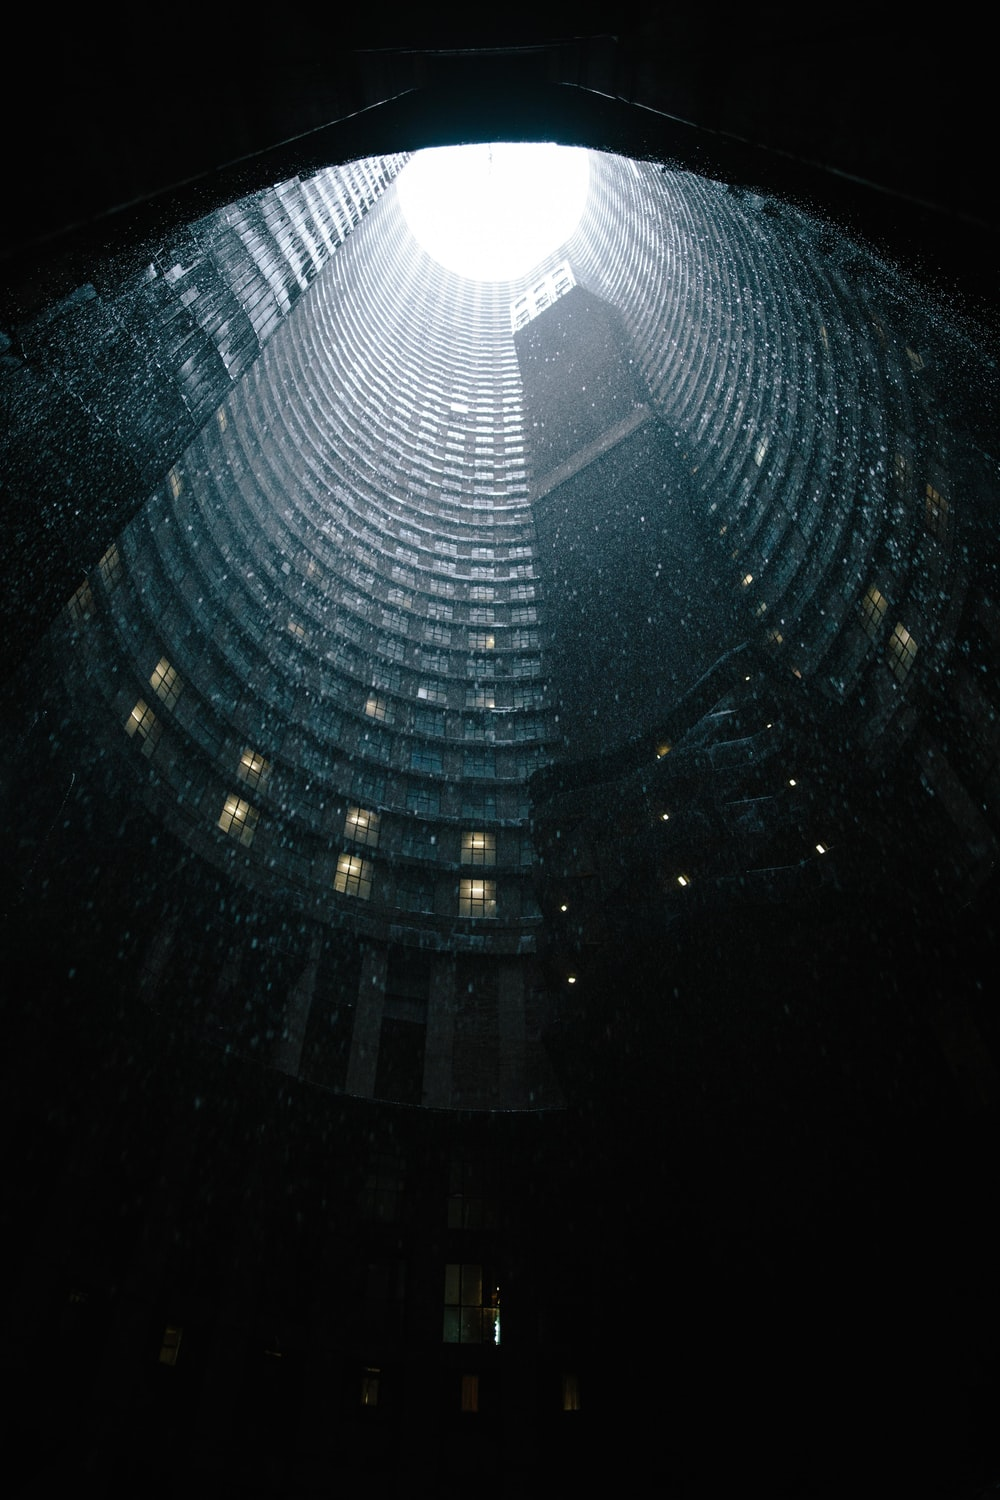 A Dramatic Shot Of The Core Ponte City Tower In Johannesburg Under Heavy Rain